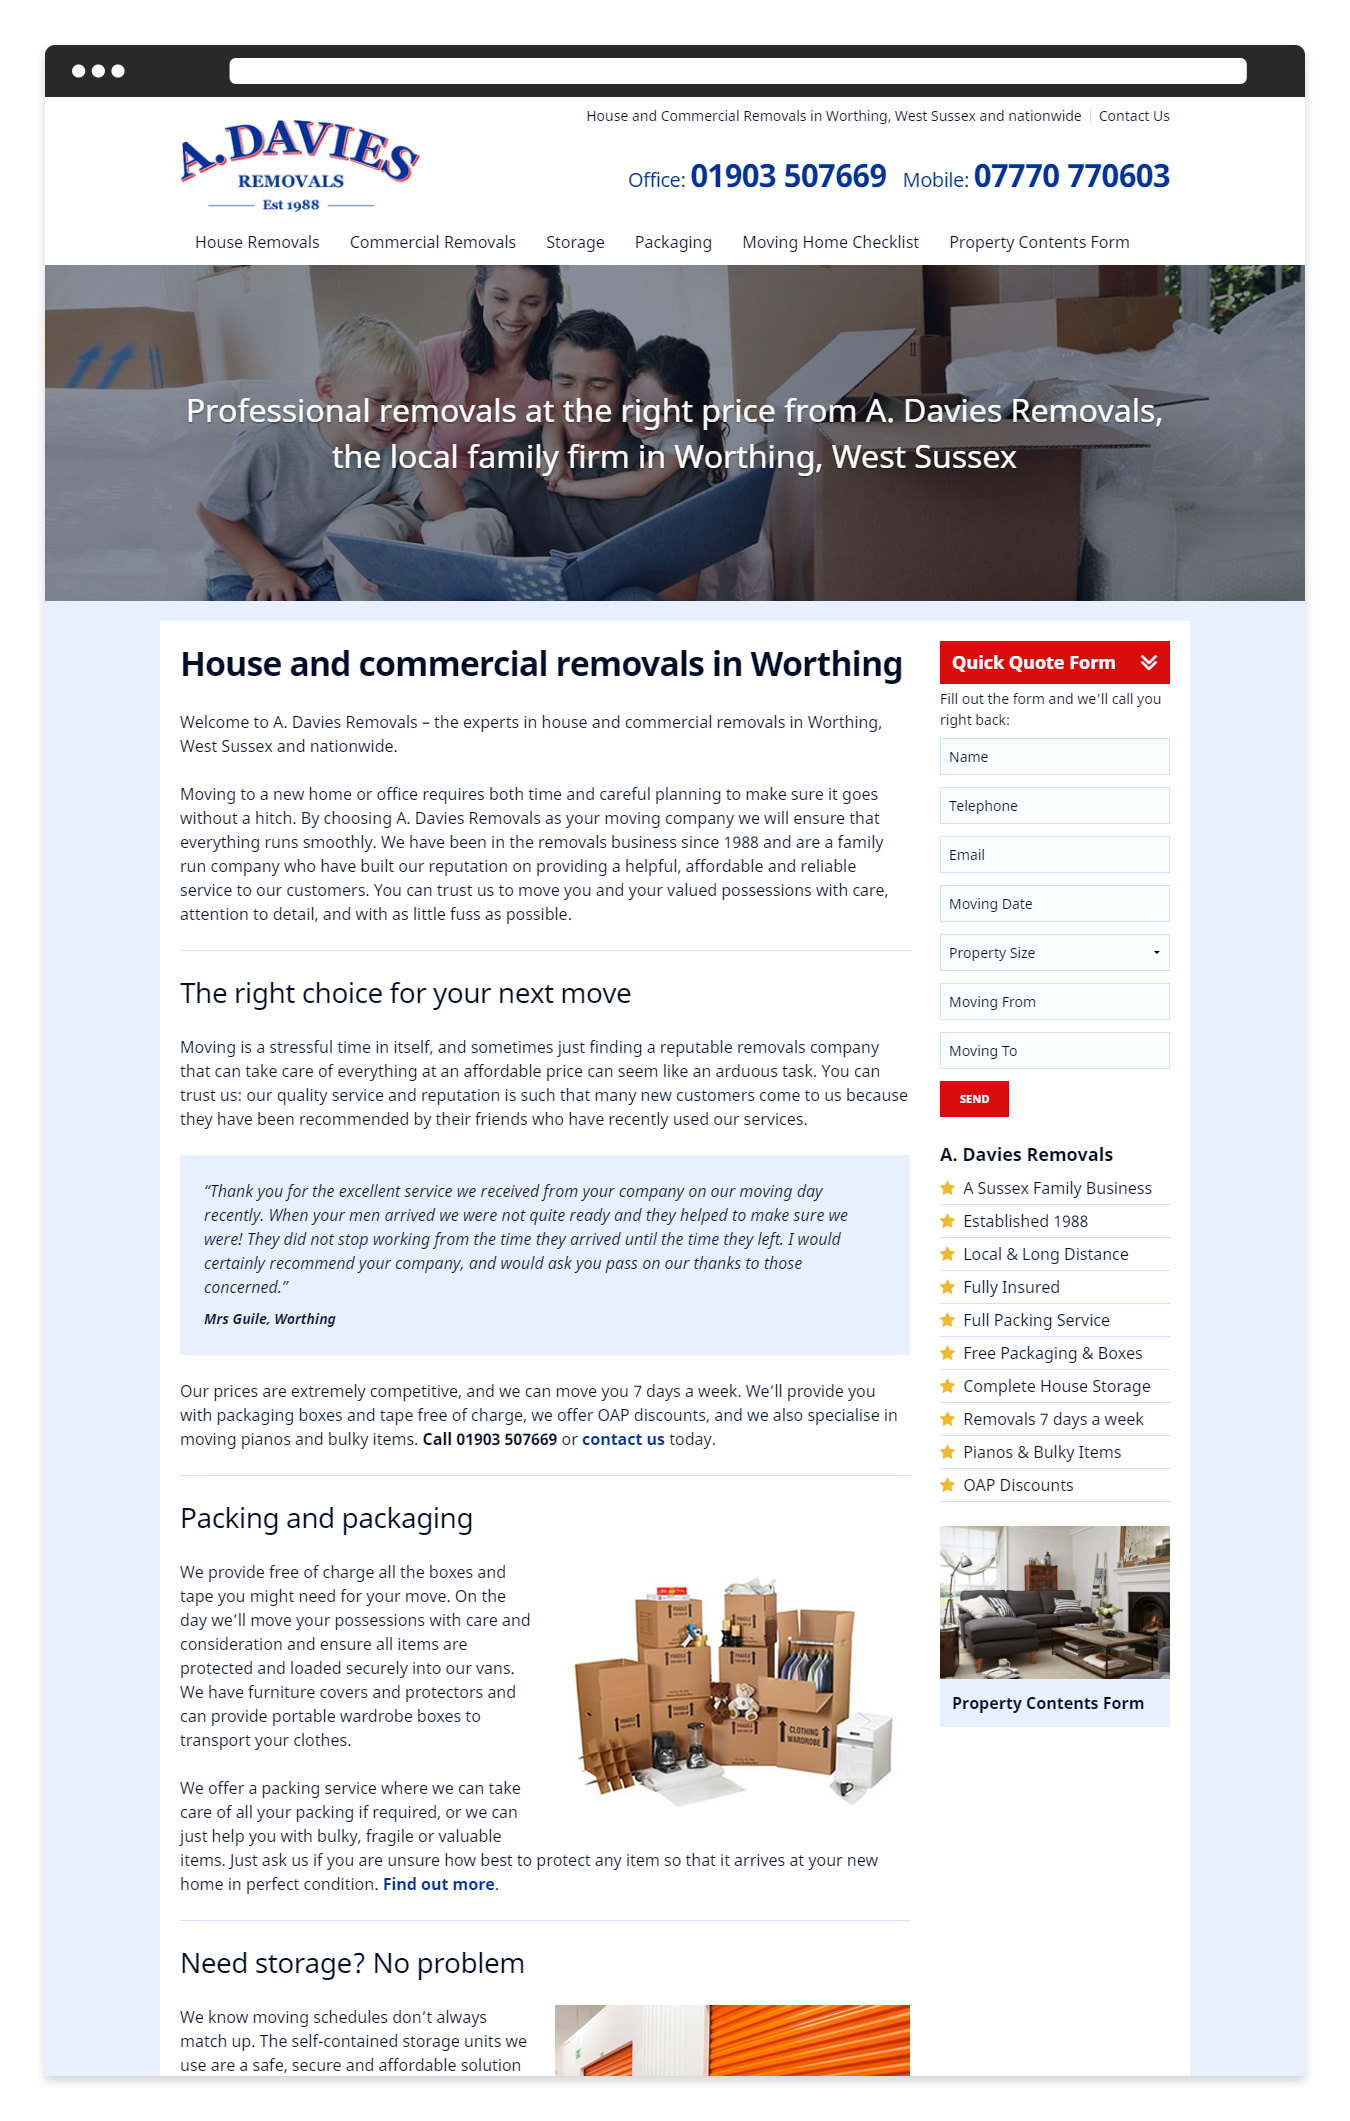 The A Davies Removals website Home page